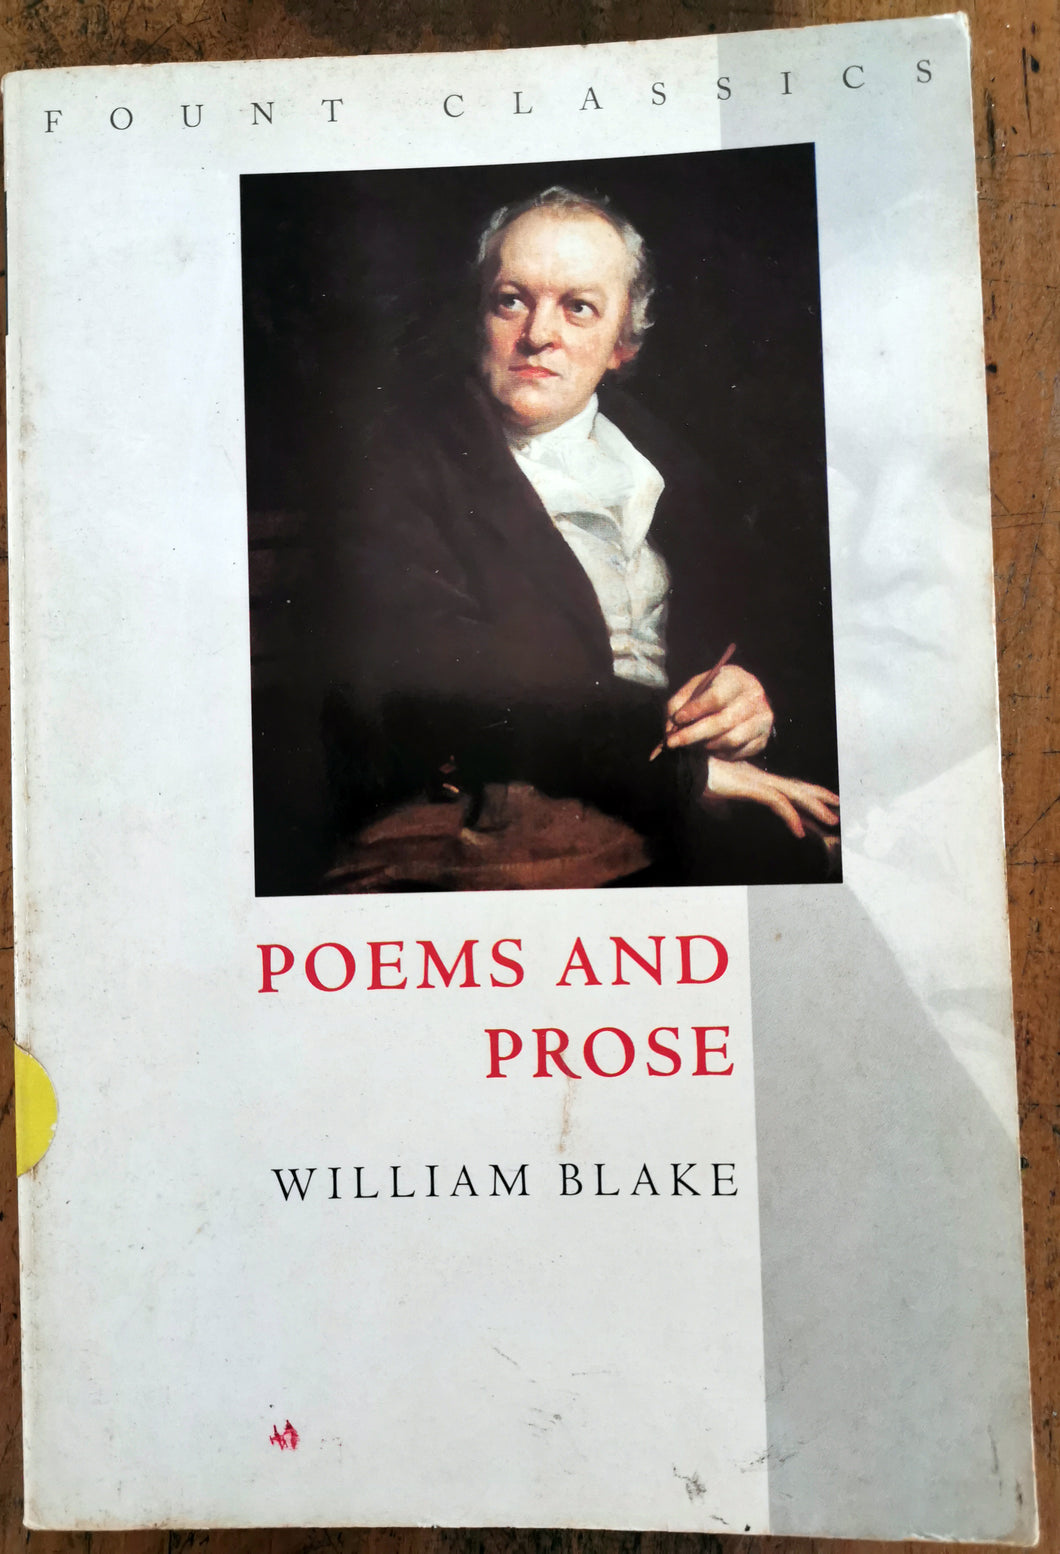 William Blake - Poems and Prose